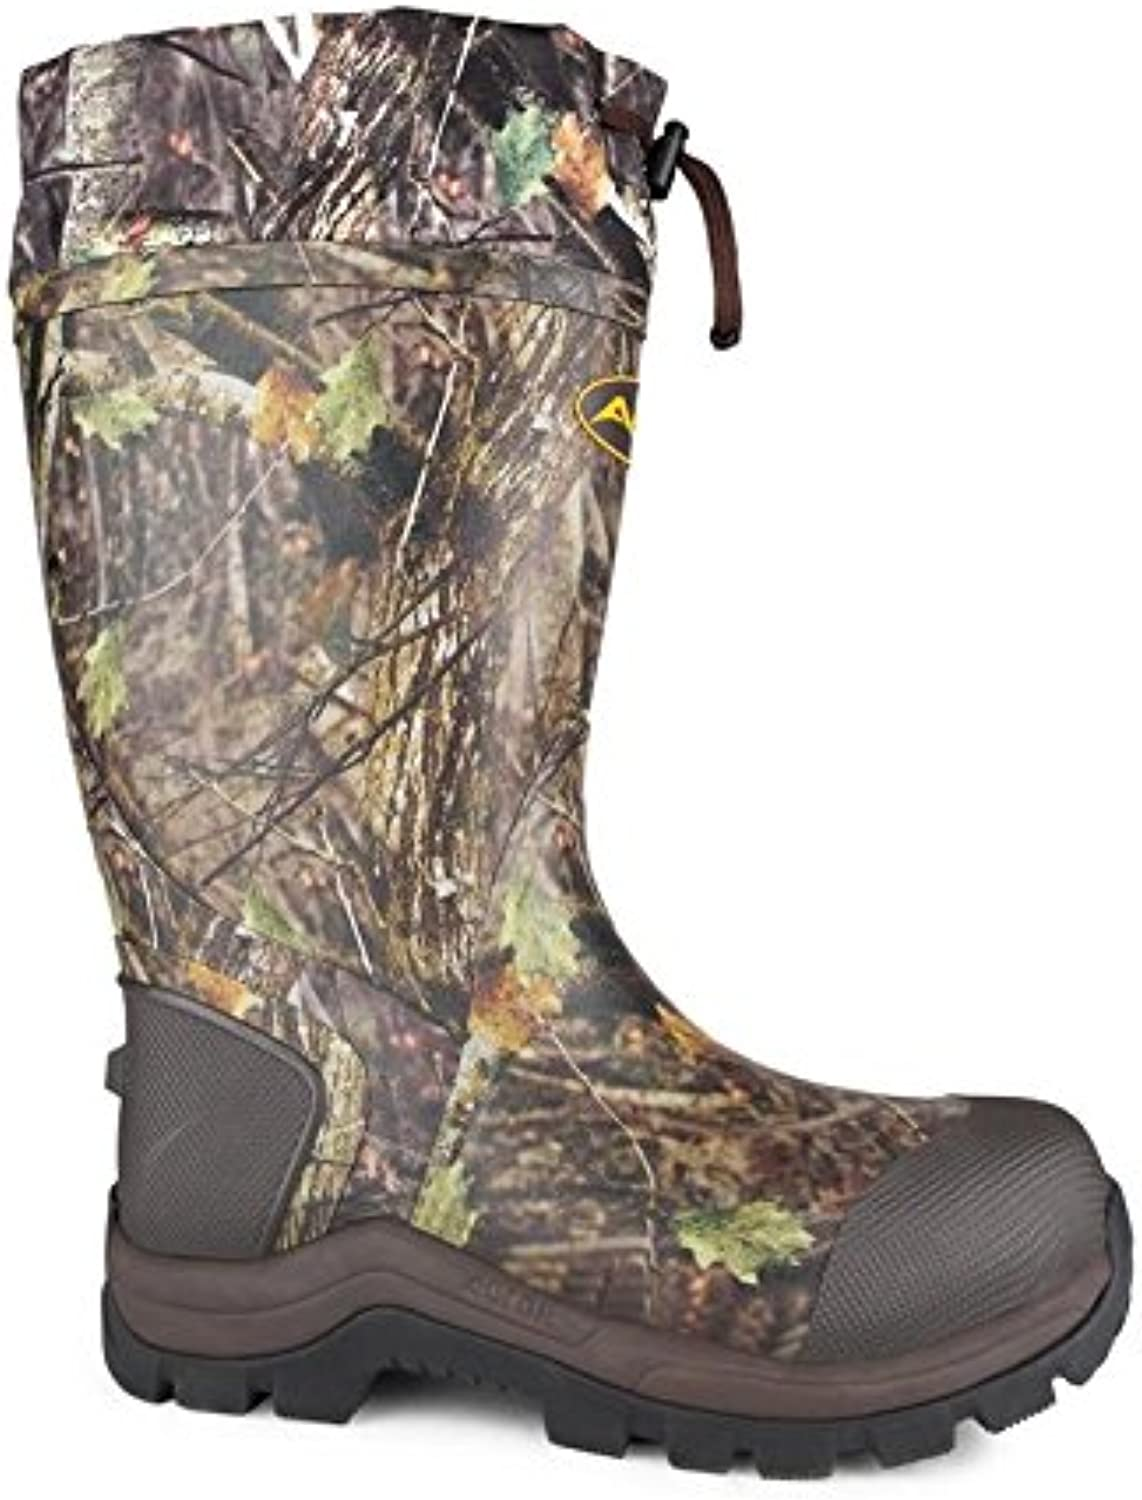 Acton Quest Industrial Rubber Boot, Camouflage